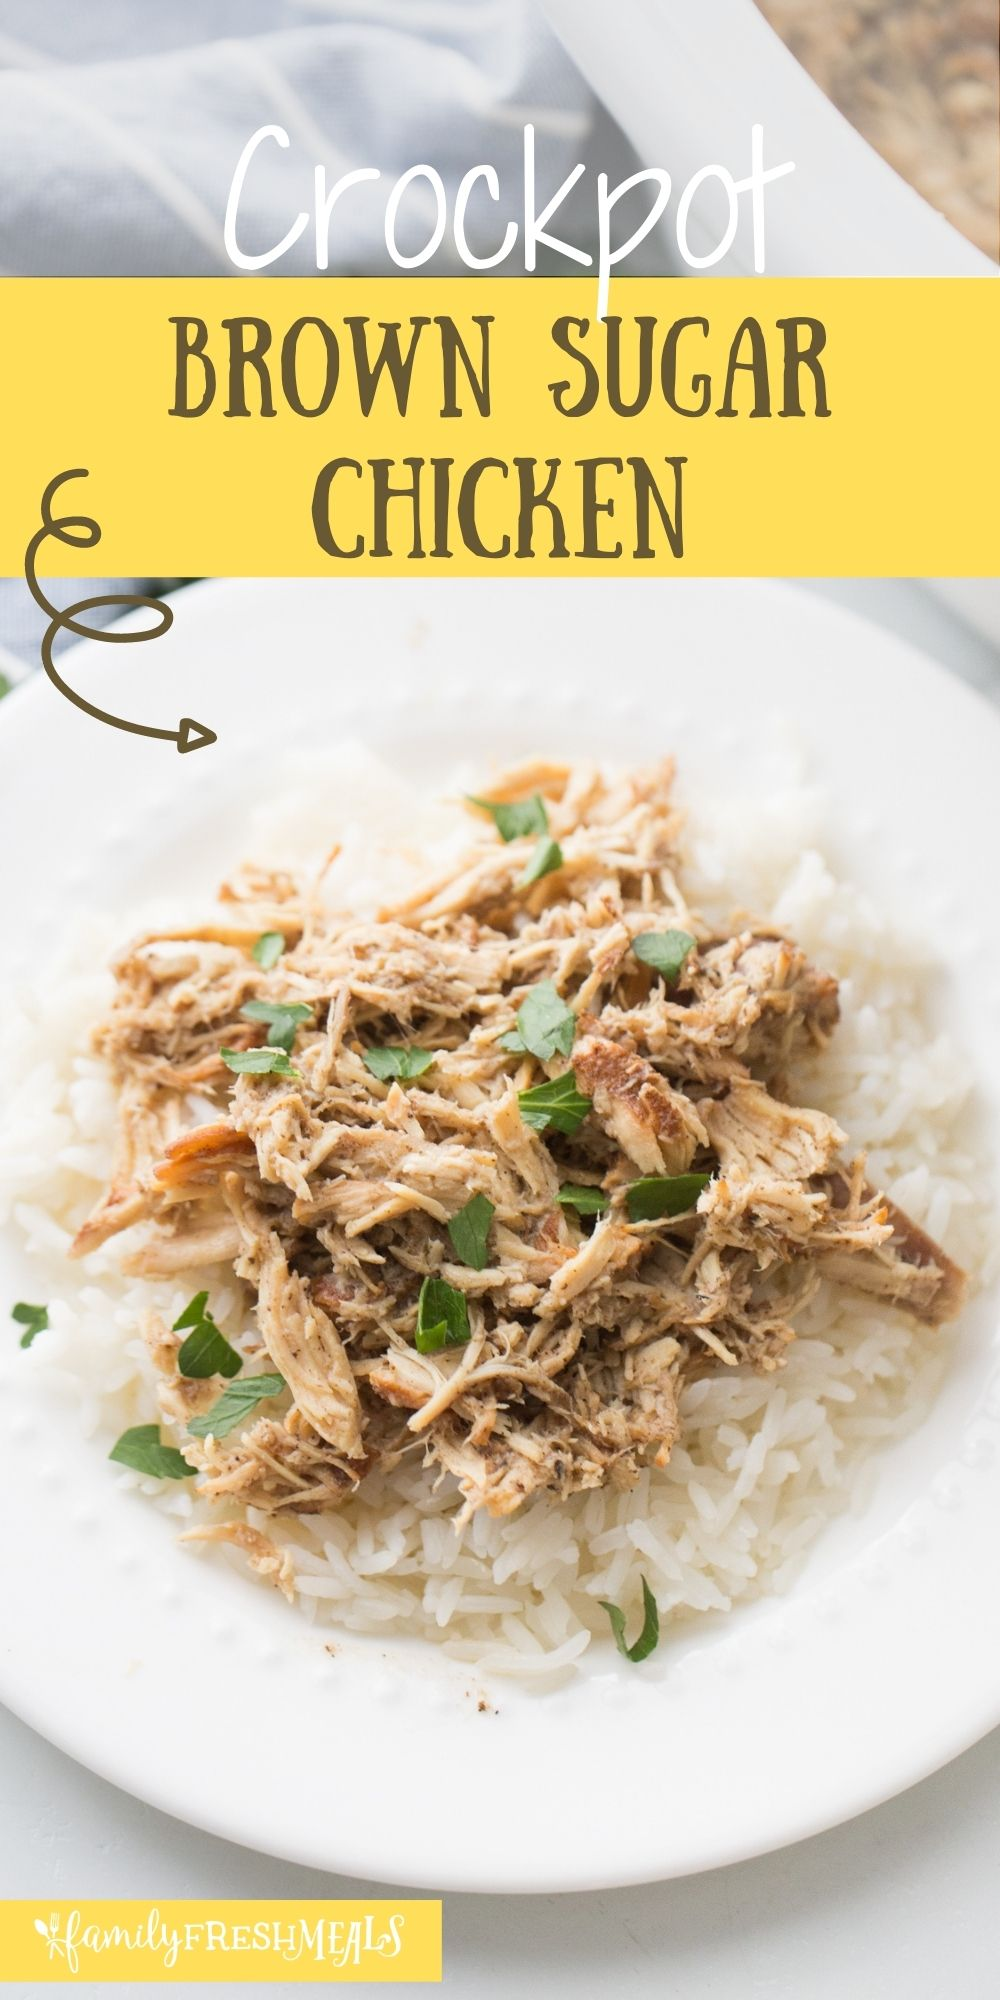 This Crockpot Brown Sugar Balsamic Chicken recipe is a fun, new variant on sweet and sour chicken. via @familyfresh